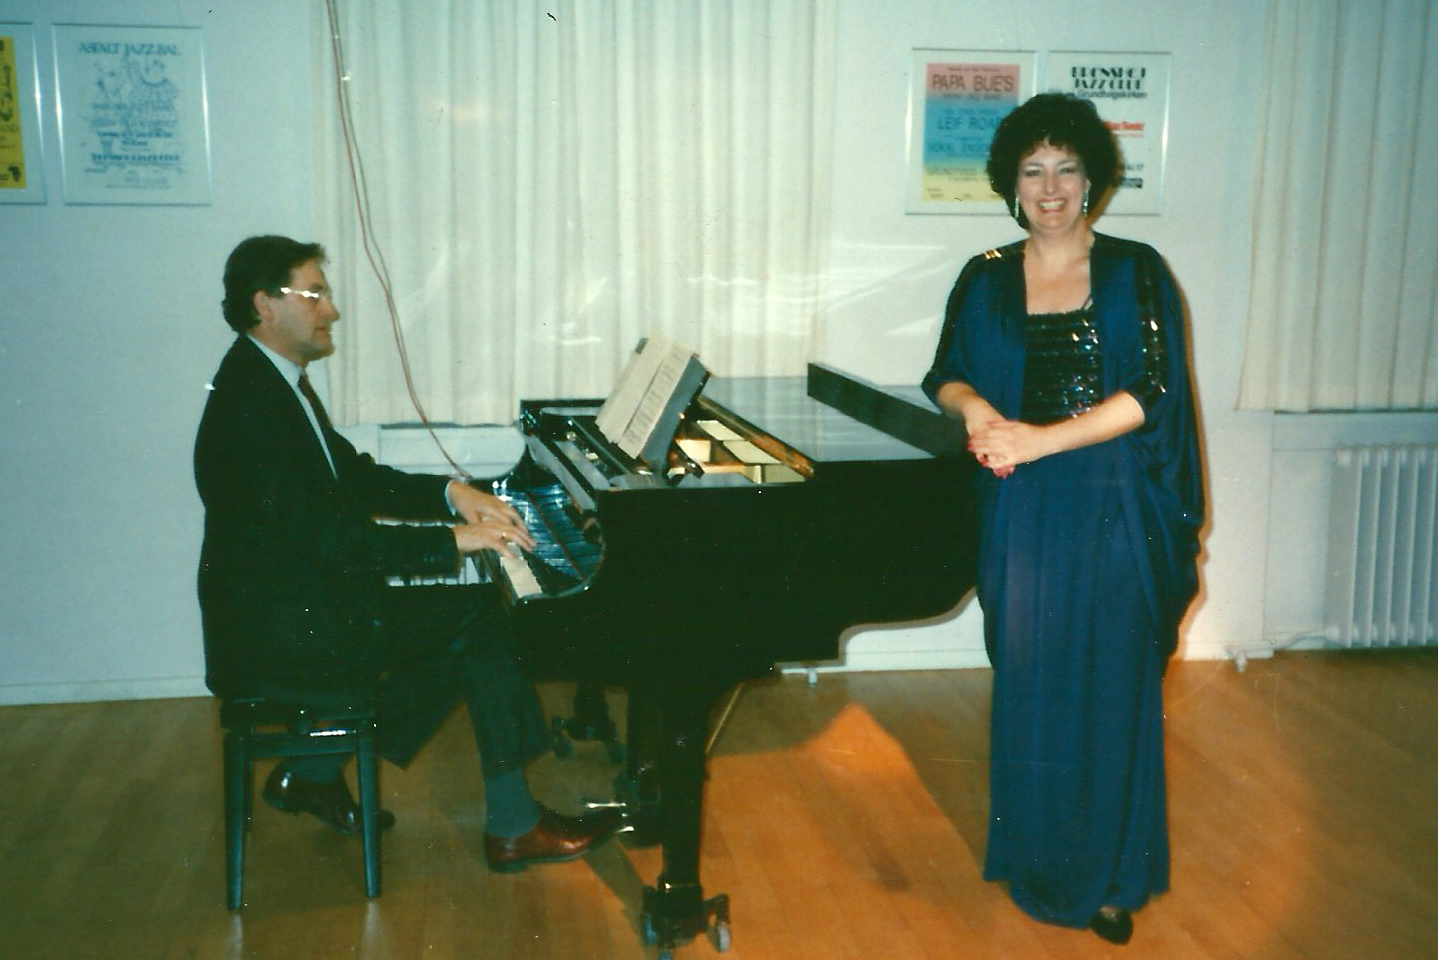 Janice's first professional European concert in Copenhagen, Denmark, 1990, with Friedrich Gürtler, pianist